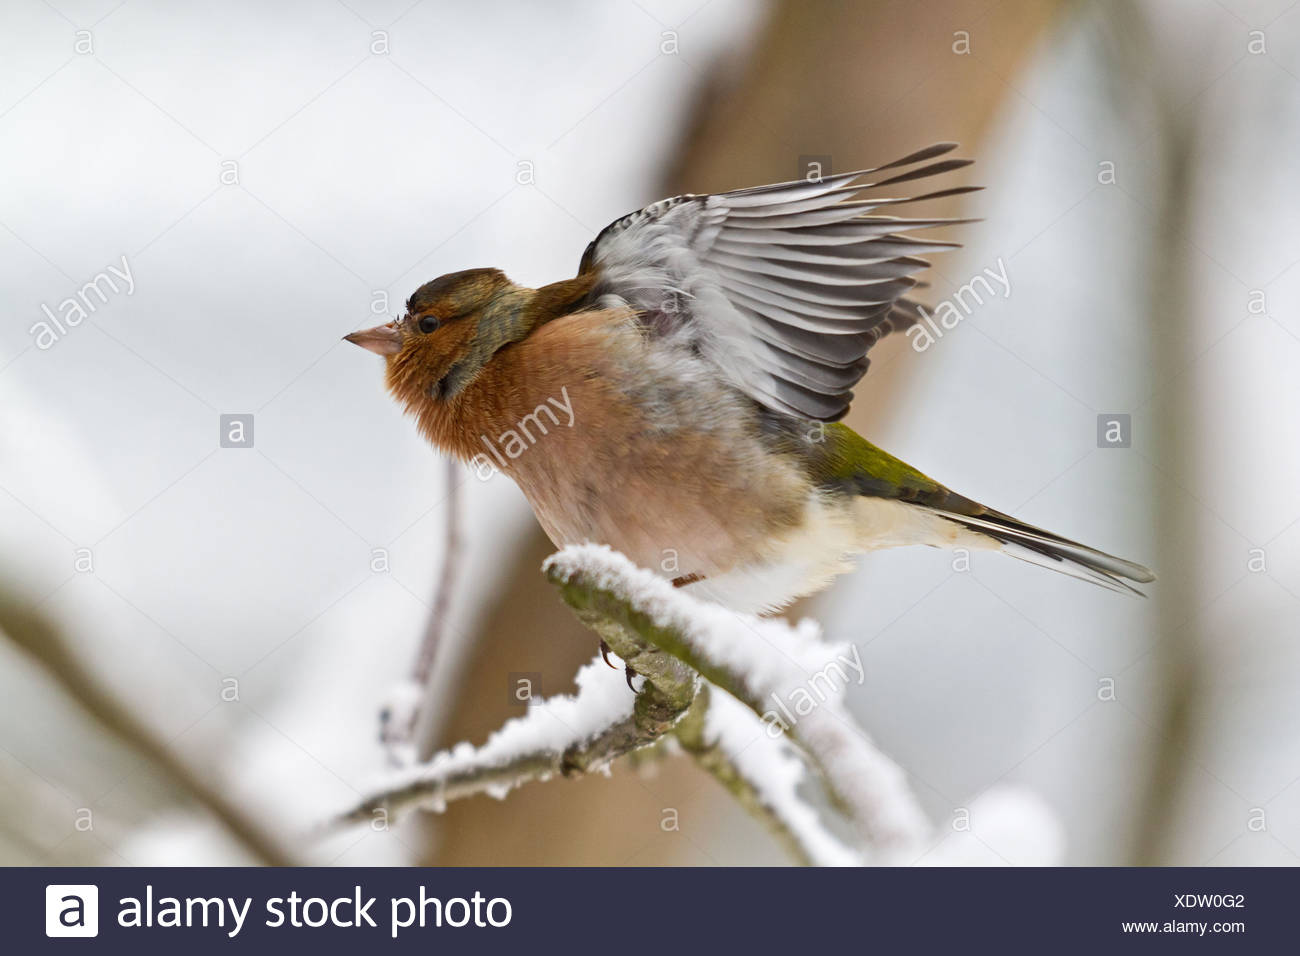 common chaffinch - Stock Image